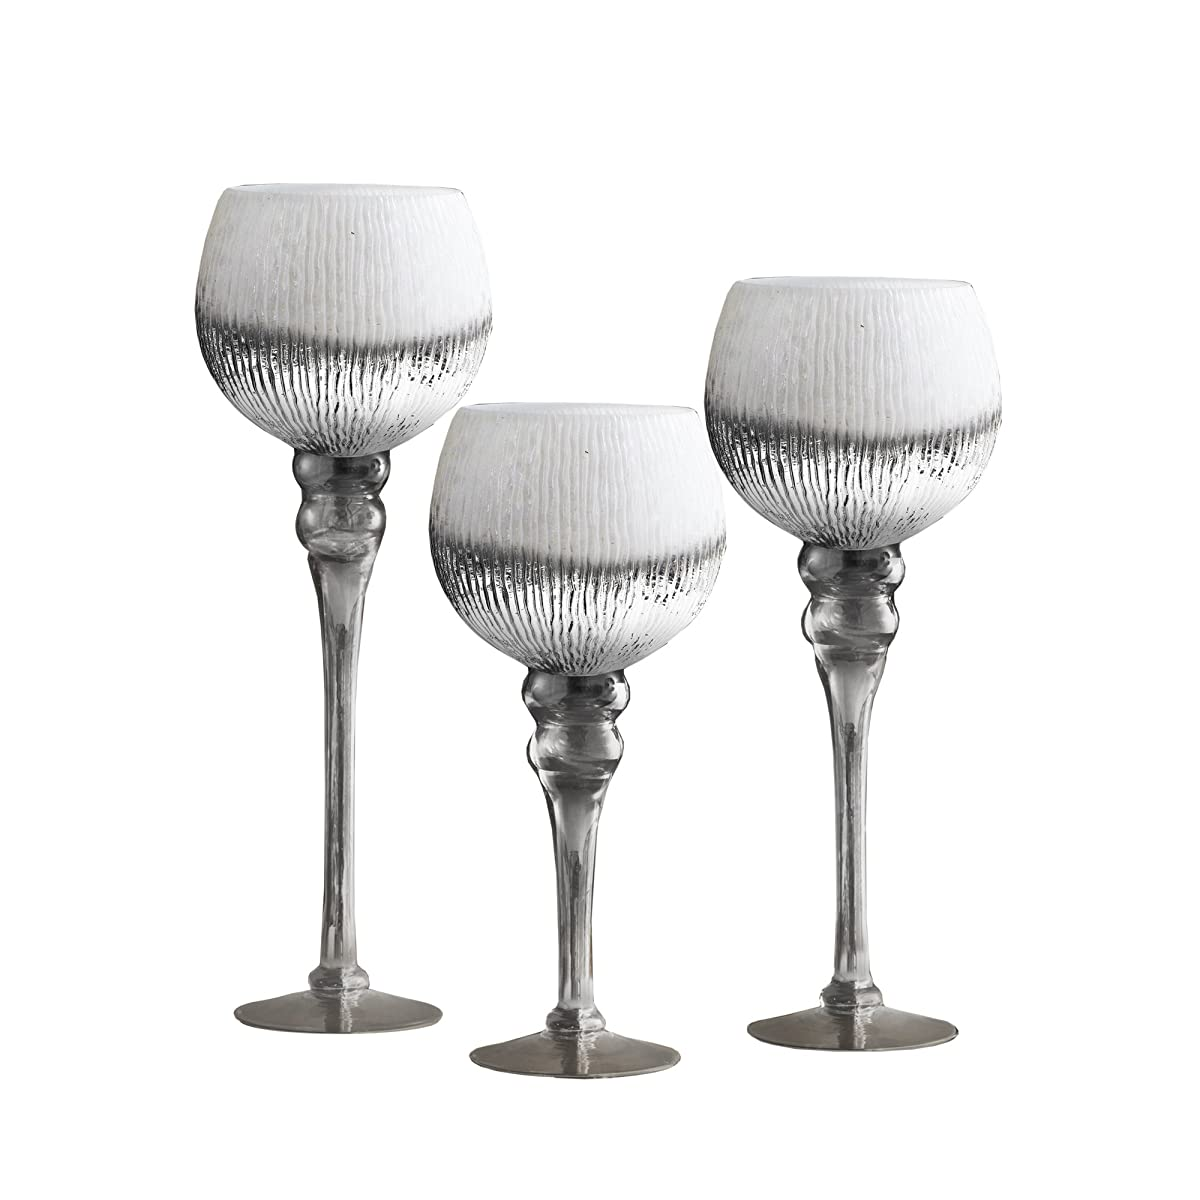 Fifth Avenue Crystal 215285-WHGB Bently Hurricanes (Set of 3), White/Silver